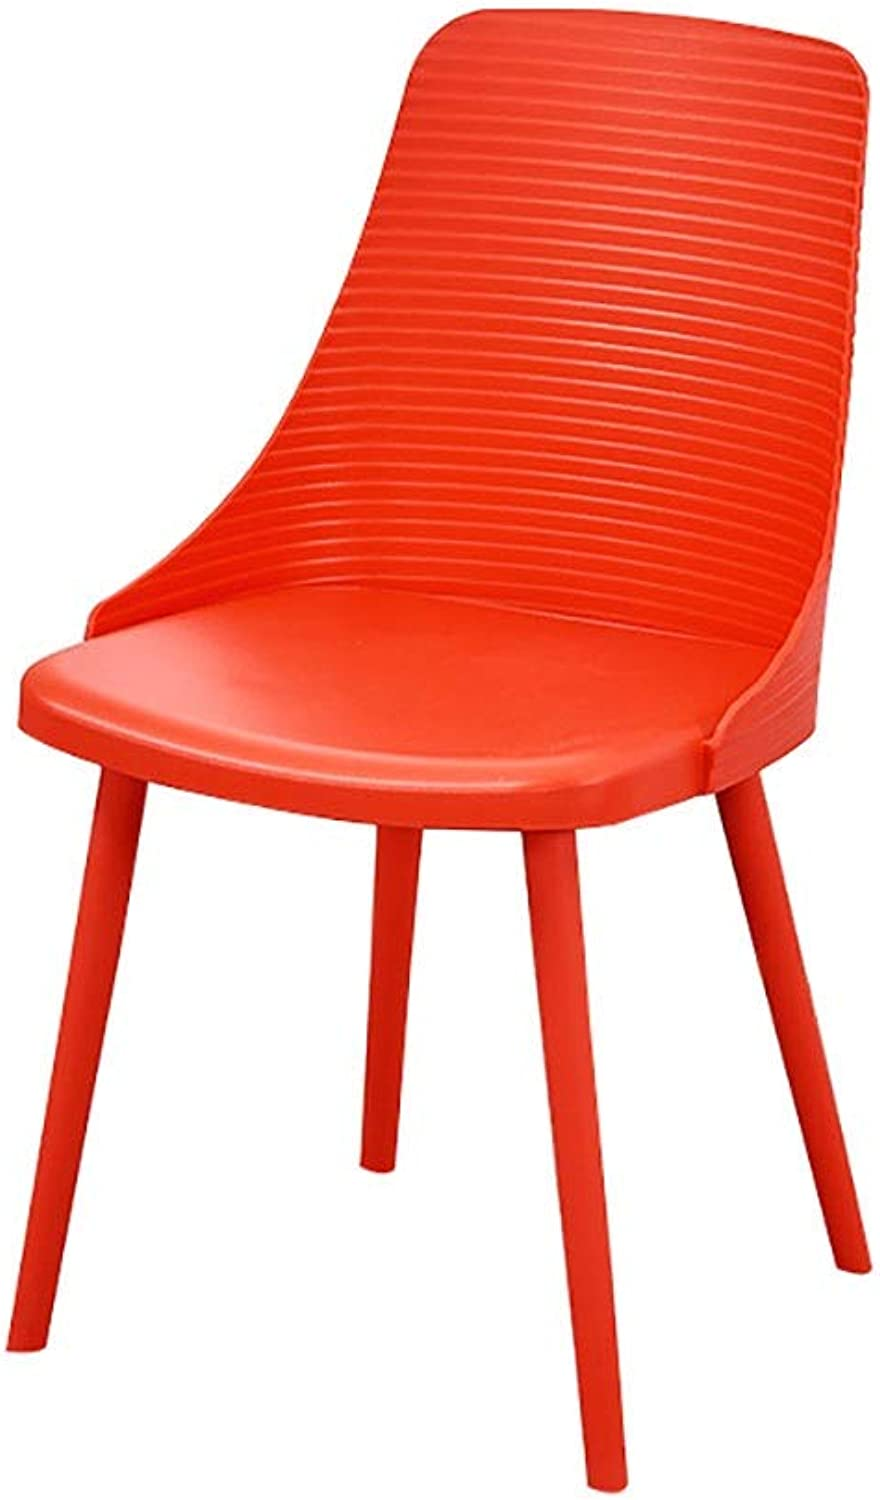 Simple Dining Chair Home Restaurant Backrest Plastic Chair Bedroom Desk Chair Adult Lounge Chair Fashion Chair (color   Red)